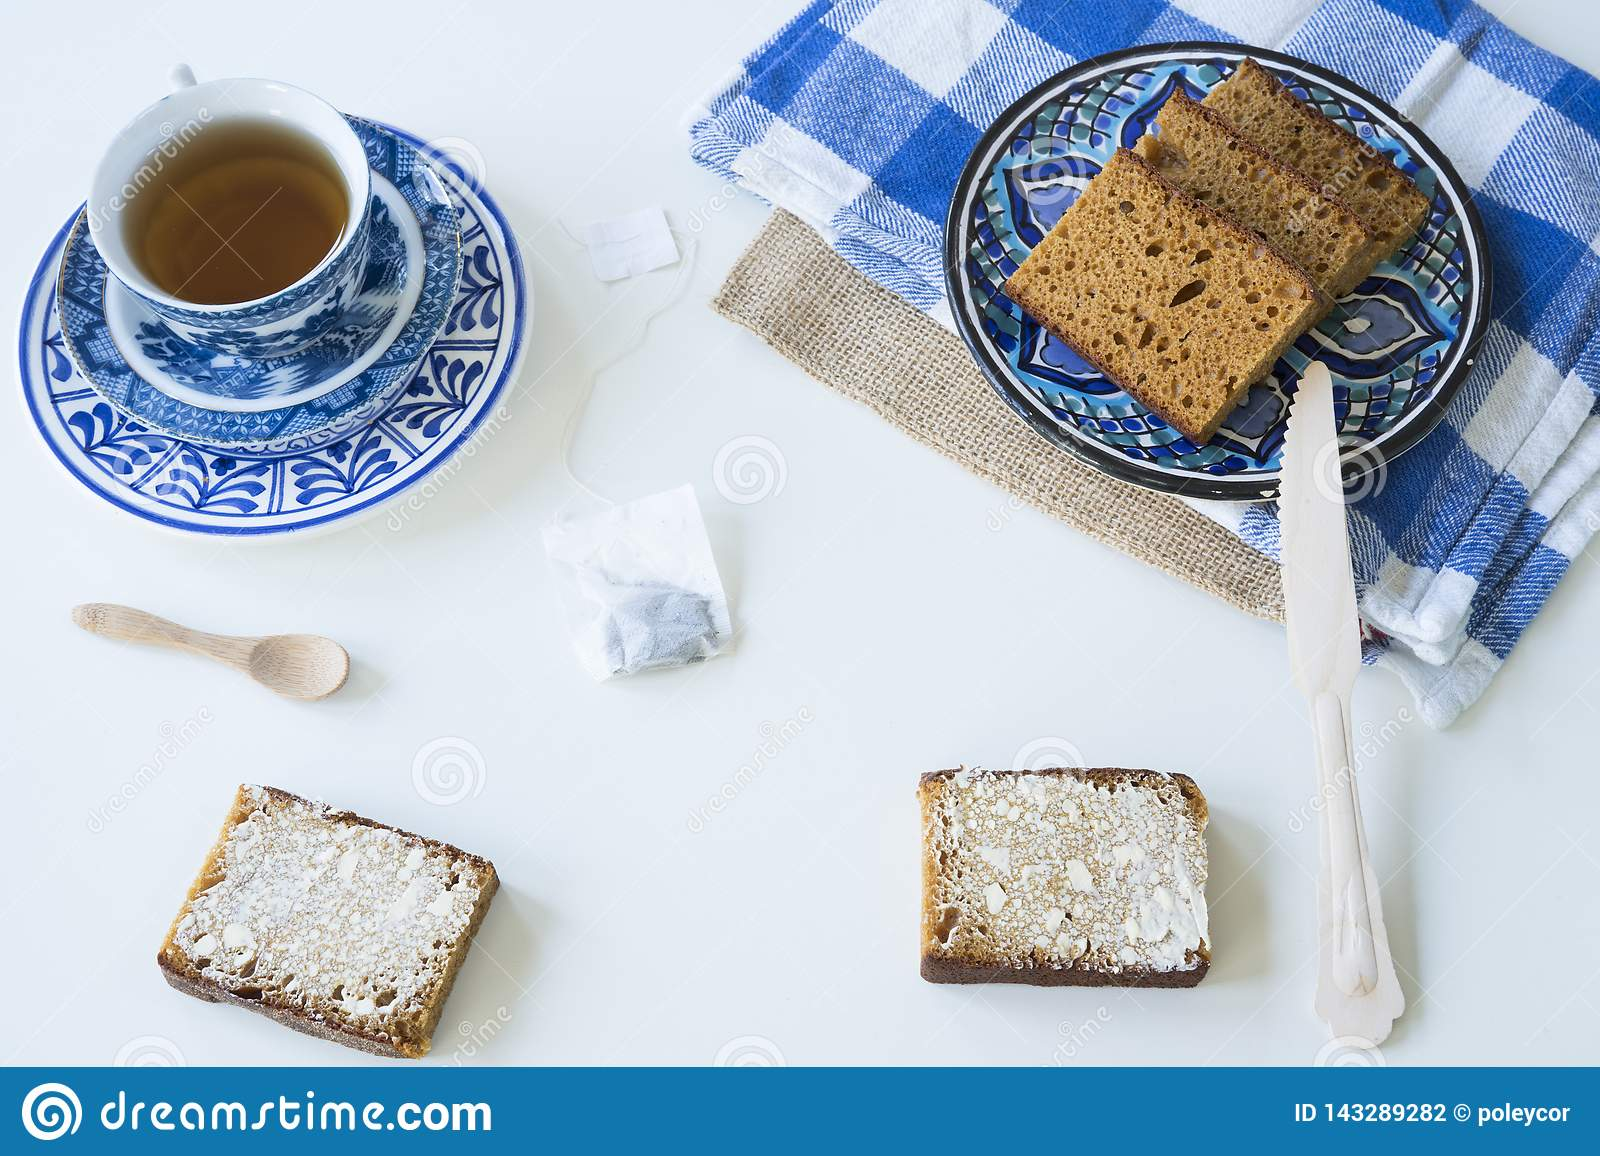 Breakfast with traditional Dutch spiced caked called ontbijtkoek or peperkoek. cup of tea, white background